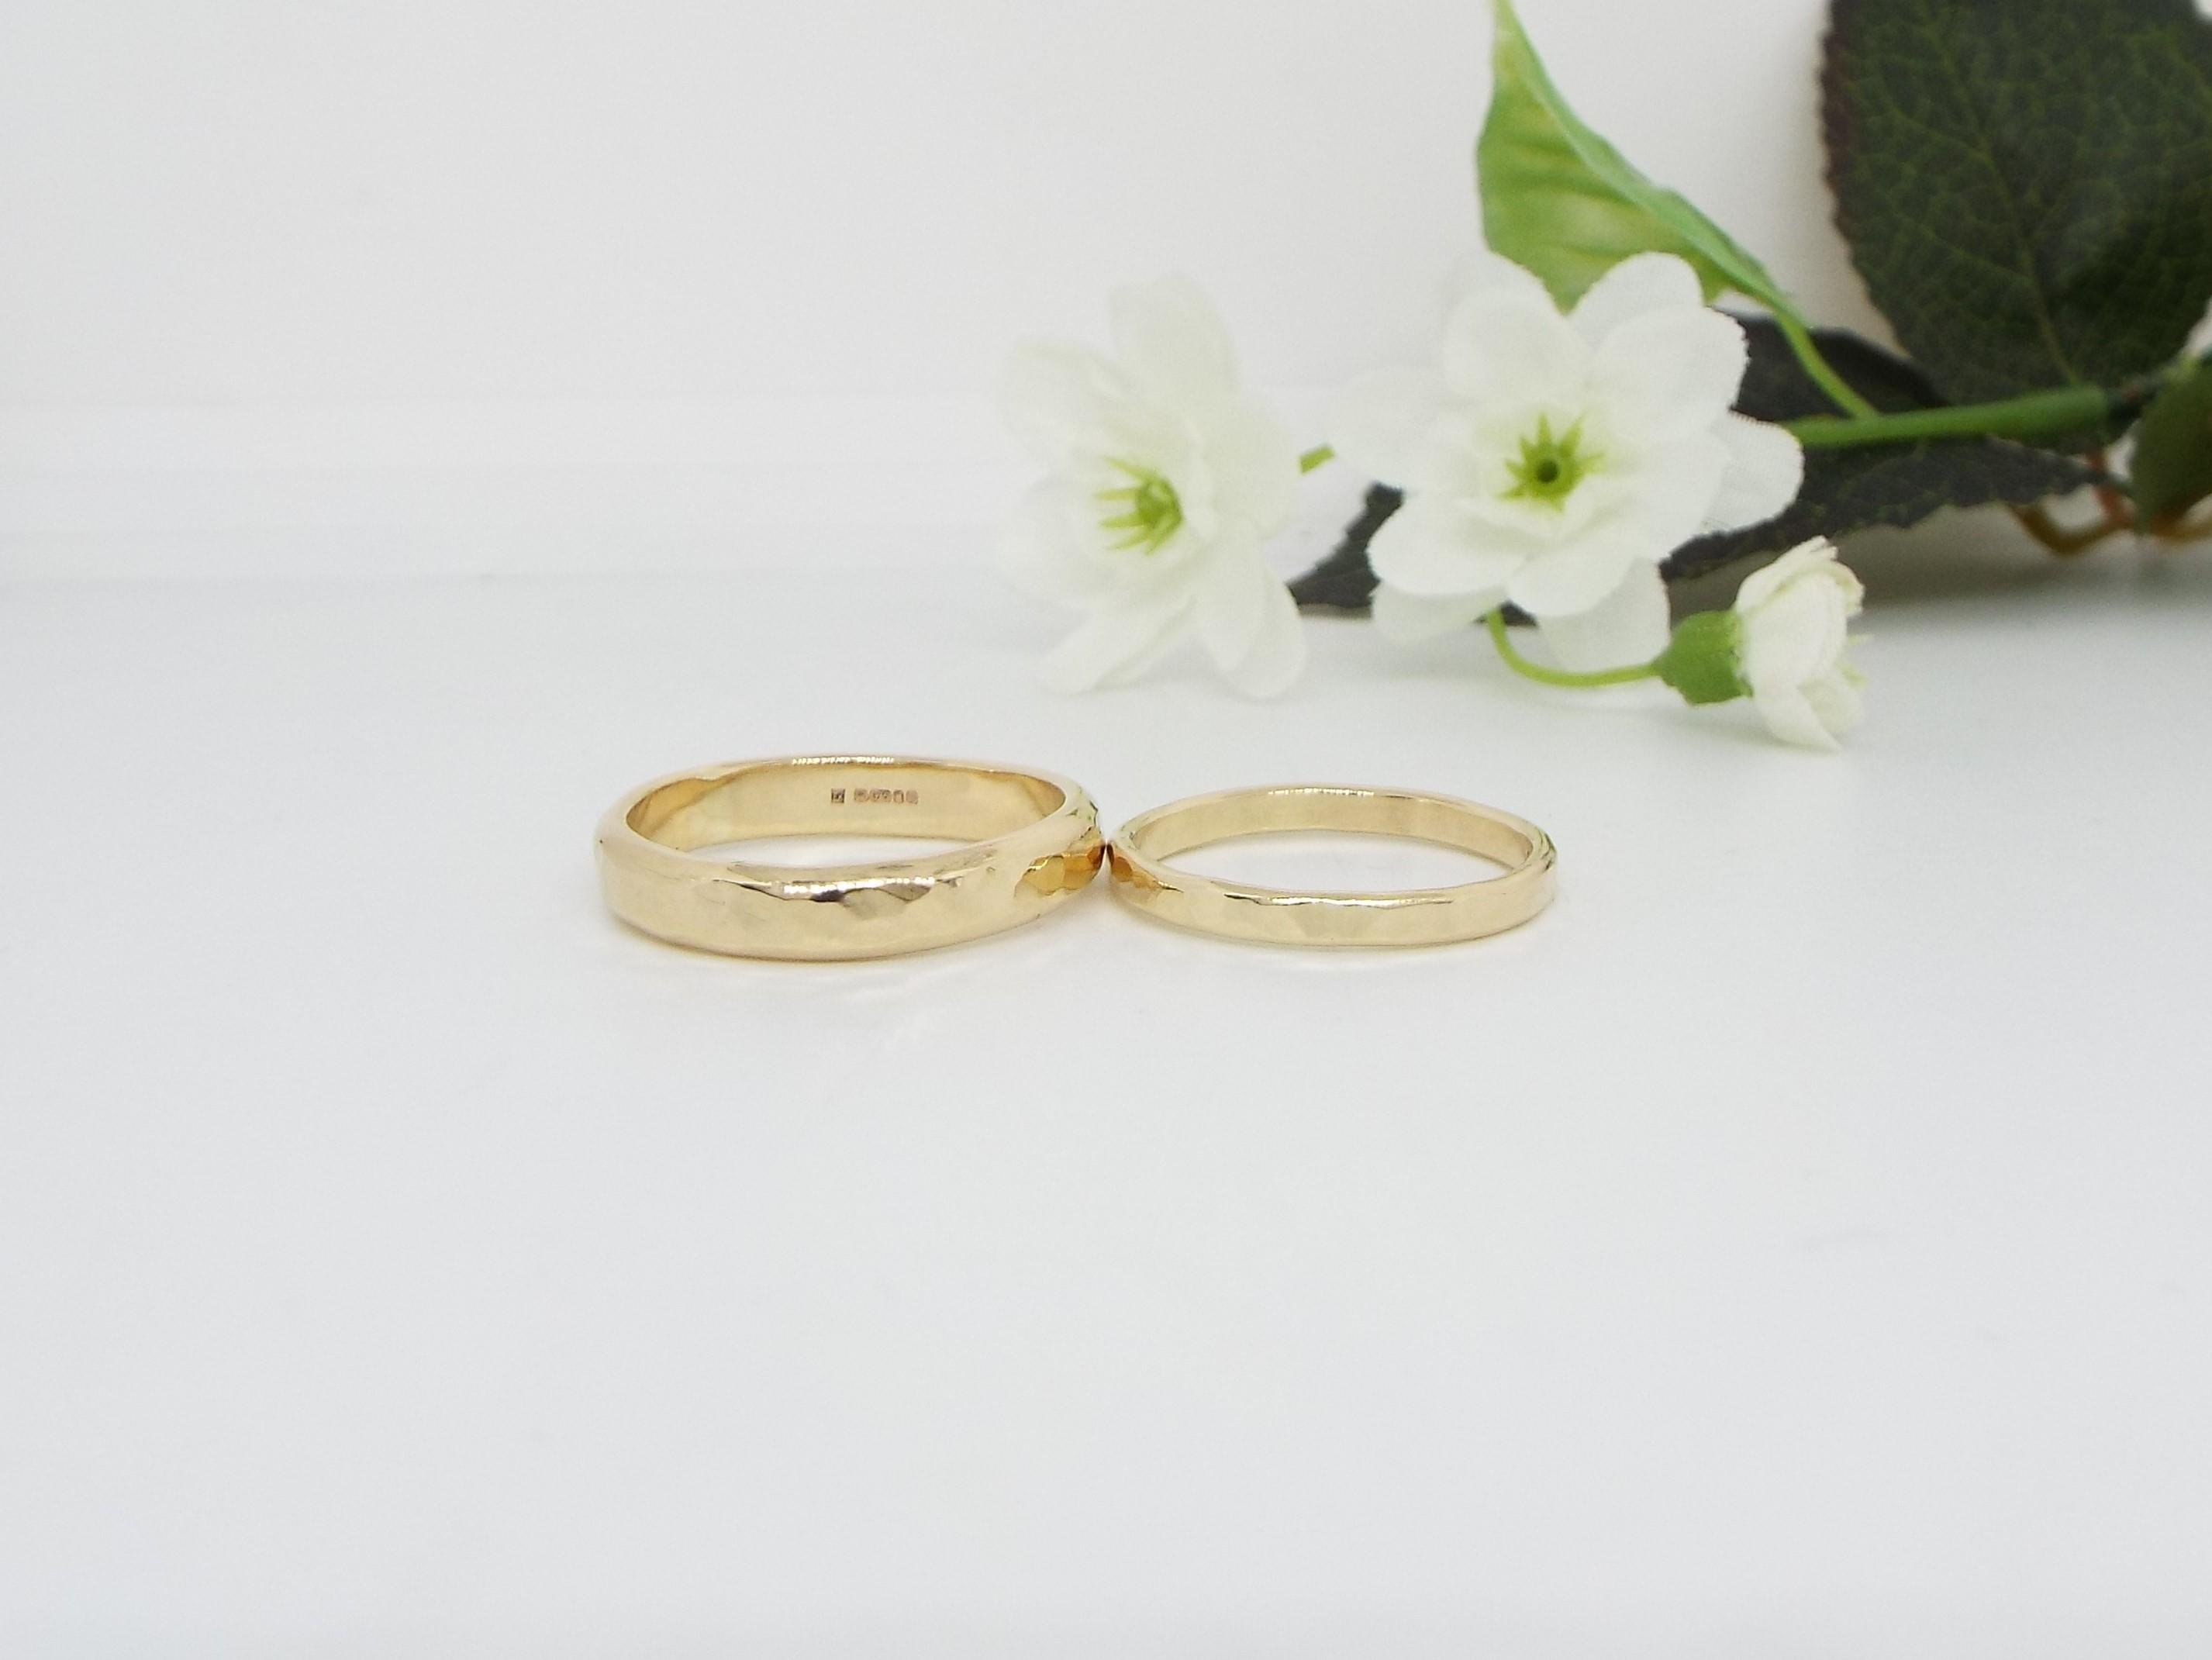 pair of gold wedding rings with hammered finish